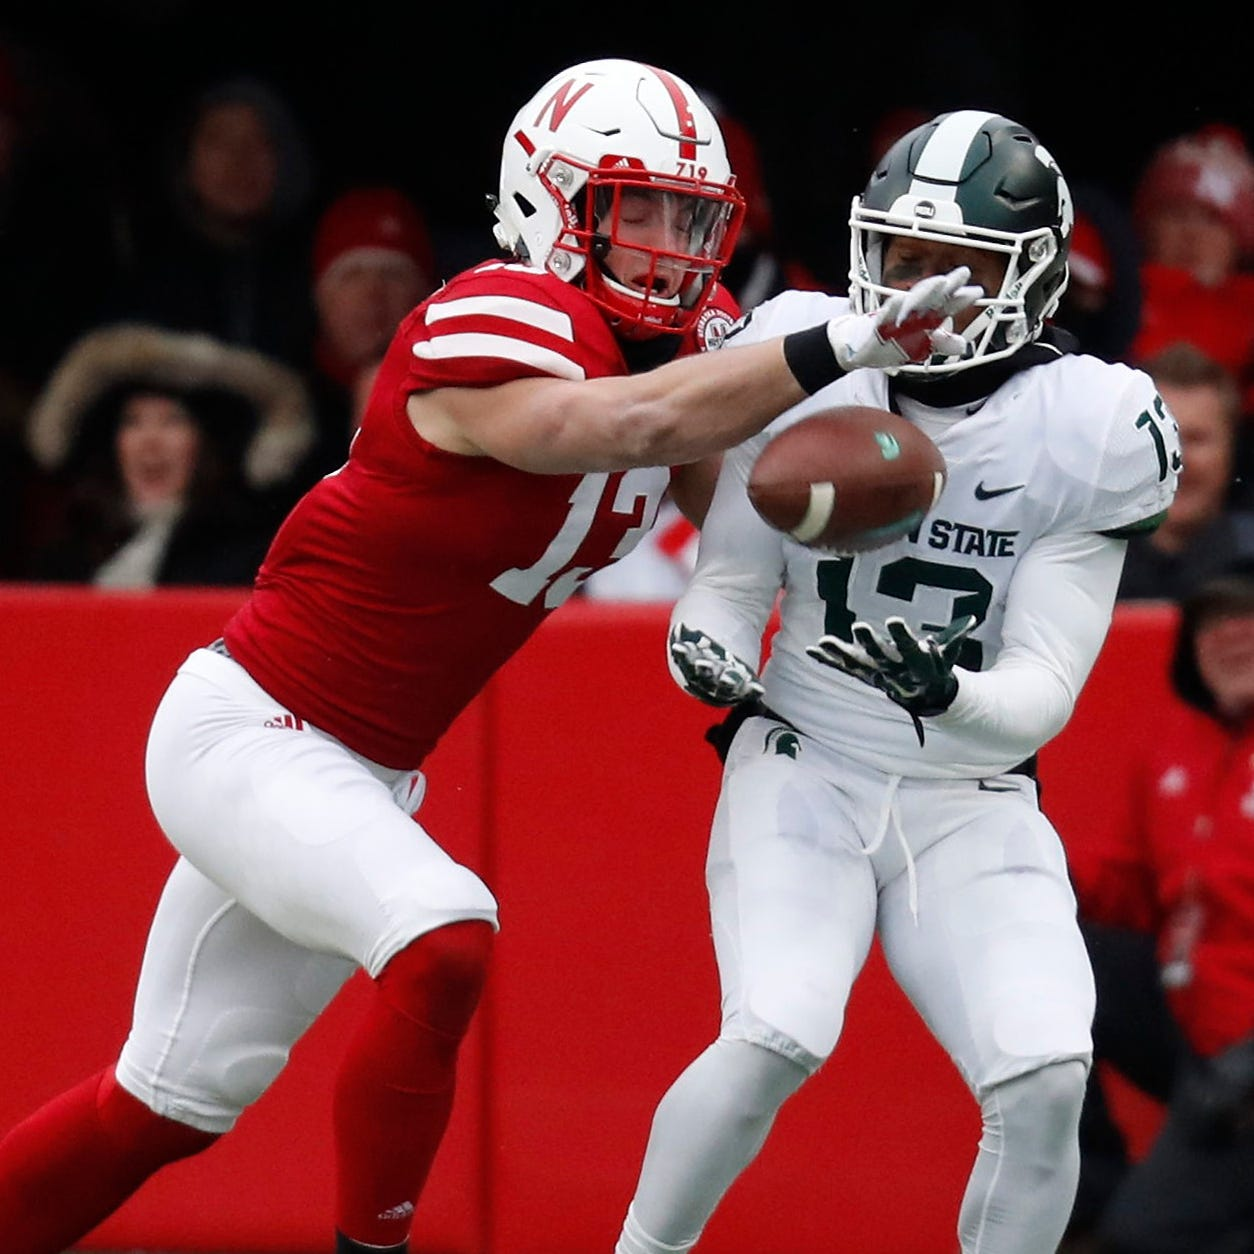 Michigan State football loses to Nebraska, 9-6: Blog recap